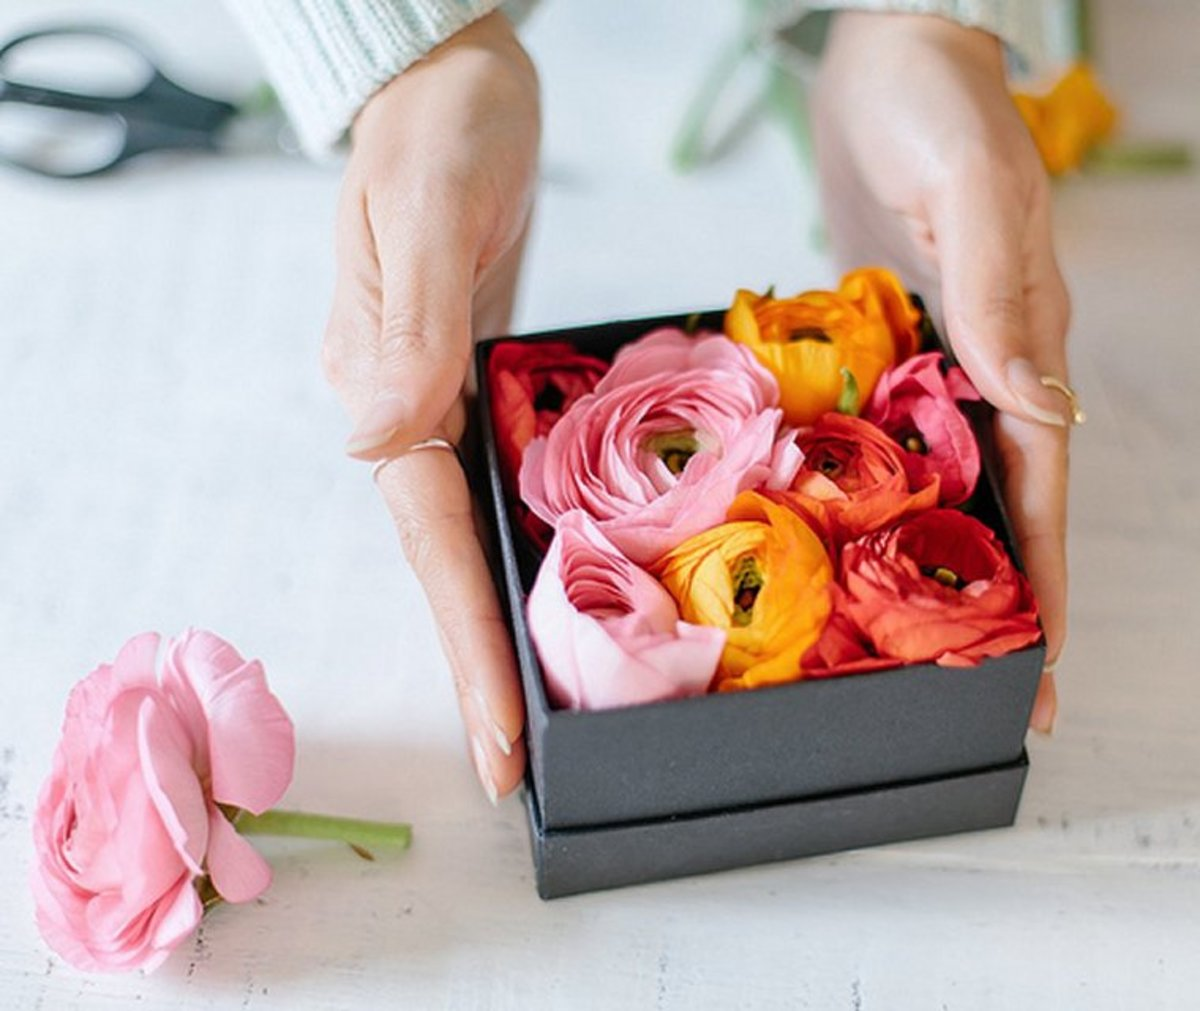 This nice twist to a Mother's Day bouquet is cheaper and you can make it yourself.